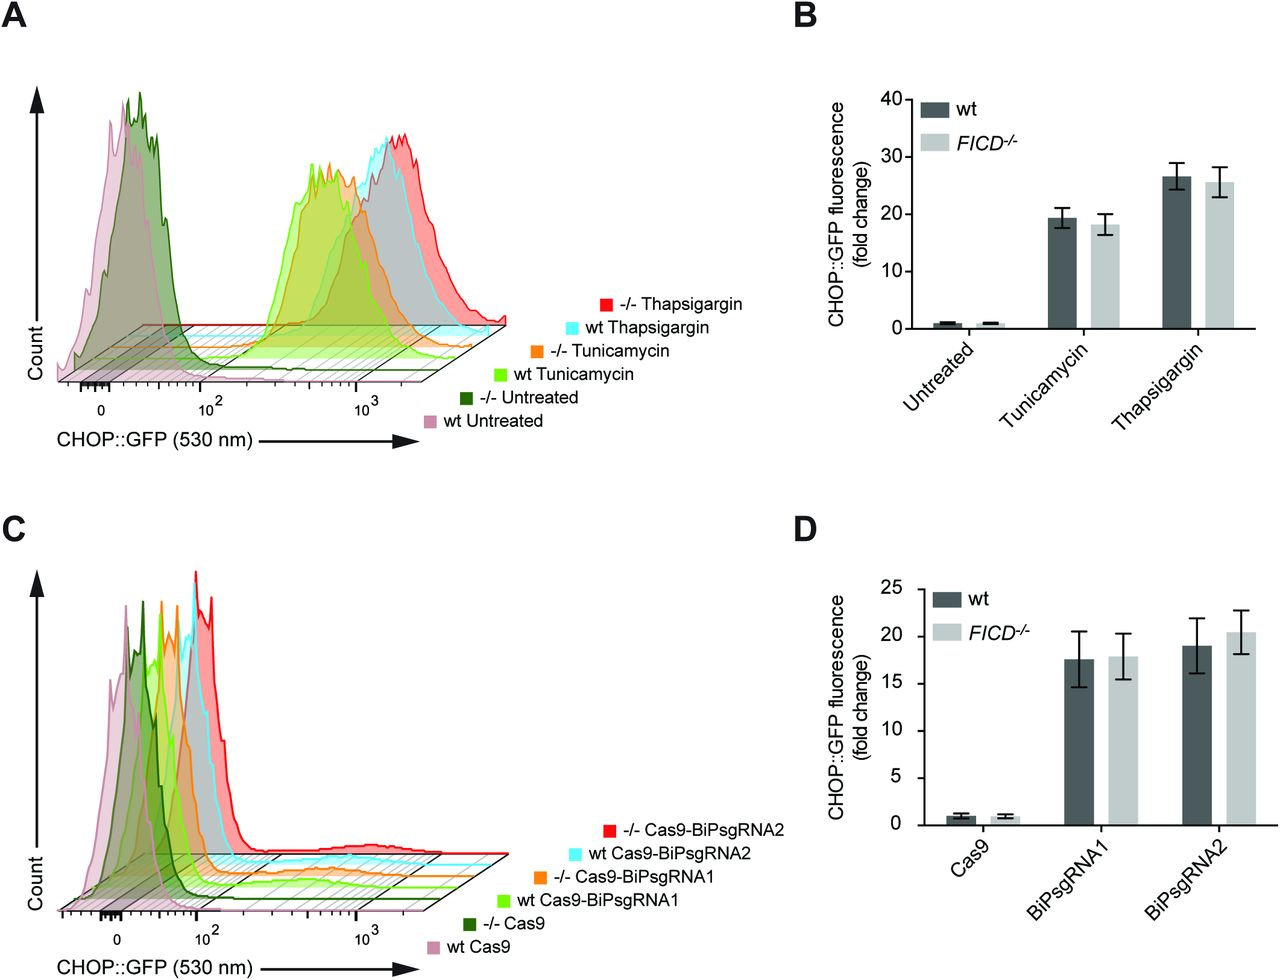 """Wildtype and FICD-deficient (-/-) cells respond indistinguishably to unfolded protein stress in the ER. (A) Flow cytometry analysis of wildtype and FICD-deficient (-/-) CHO-K1 CHOP::GFP UPR reporter cells treated with the UPR-inducing compounds, tunicamycin (2.5 µg/ml) or thapsigargin (0.5 µM), for 16 hours before analysis. Note the equal accumulation of CHOP::GFP-positive cells in tunicamycin- or thapsigargin-treated wildtype and FICD −/− cells. (B) Plot of the median values ± SD of the GFP fluorescent signal of the samples described in """"A"""" from three independent experiments (fold change relative to untreated wildtype cells; n = 3). (C) Flow cytometry analysis of wildtype and FICD-deficient (-/-) CHO-K1 CHOP::GFP UPR reporter cells transiently transfected with plasmids encoding the Cas9 nuclease and single guide RNAs targeting hamster BiP. Note the similar levels of UPR signaling in wildtype and FICD −/− cells. D) Plot of the median values ± SD of the CHOP::GFP fluorescent signal in the transfected subpopulation of the cells shown in """"C"""" from three independent experiments. Transfected cells were identified by co-expression of a mCherry marker (not shown) carried by the Cas9 plasmid (fold change relative to wildtype cells transfected with plasmid DNA encoding Cas9 and mCherry only; n = 3)."""